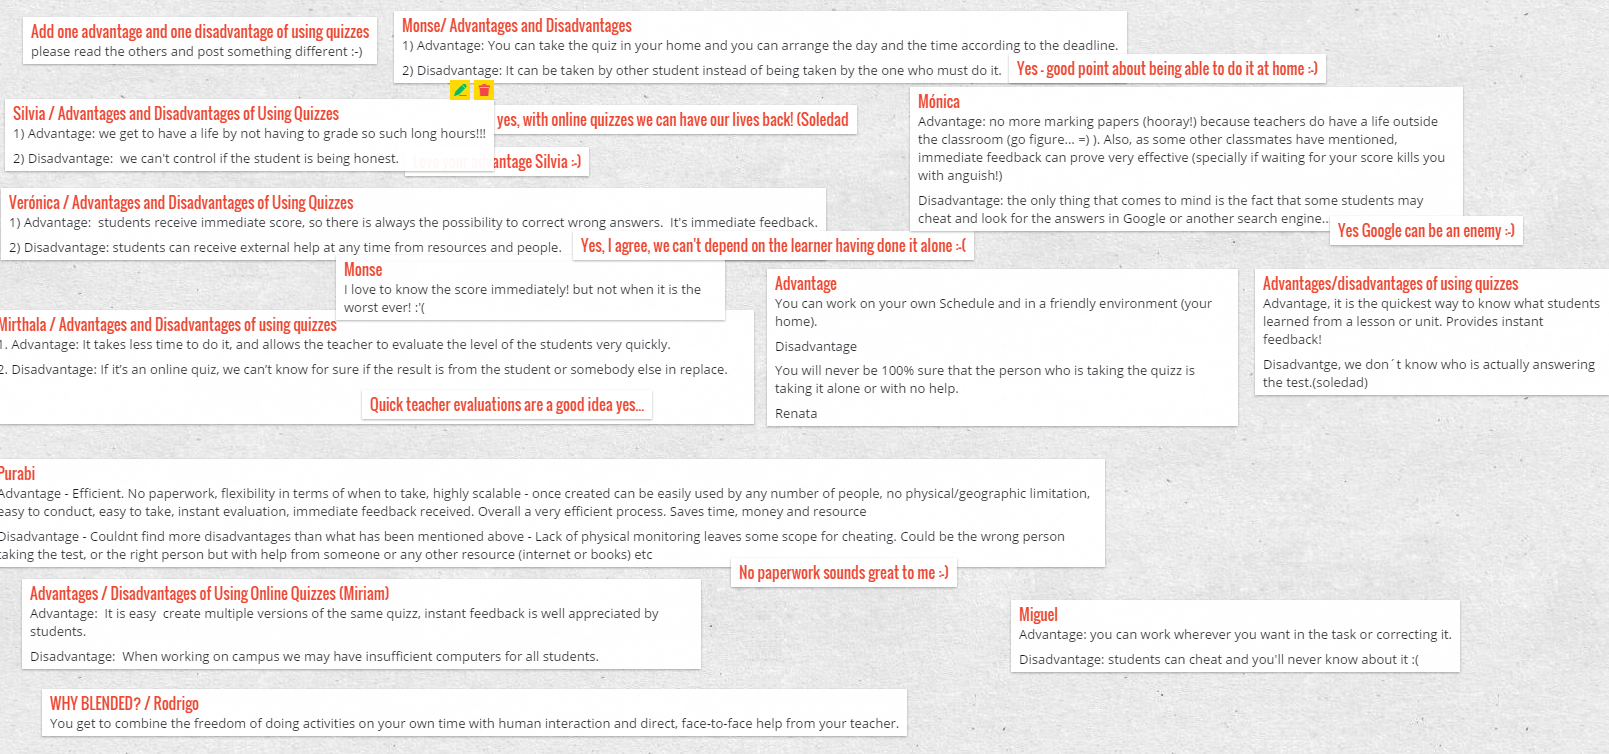 Create a Padlet wall for your classroom